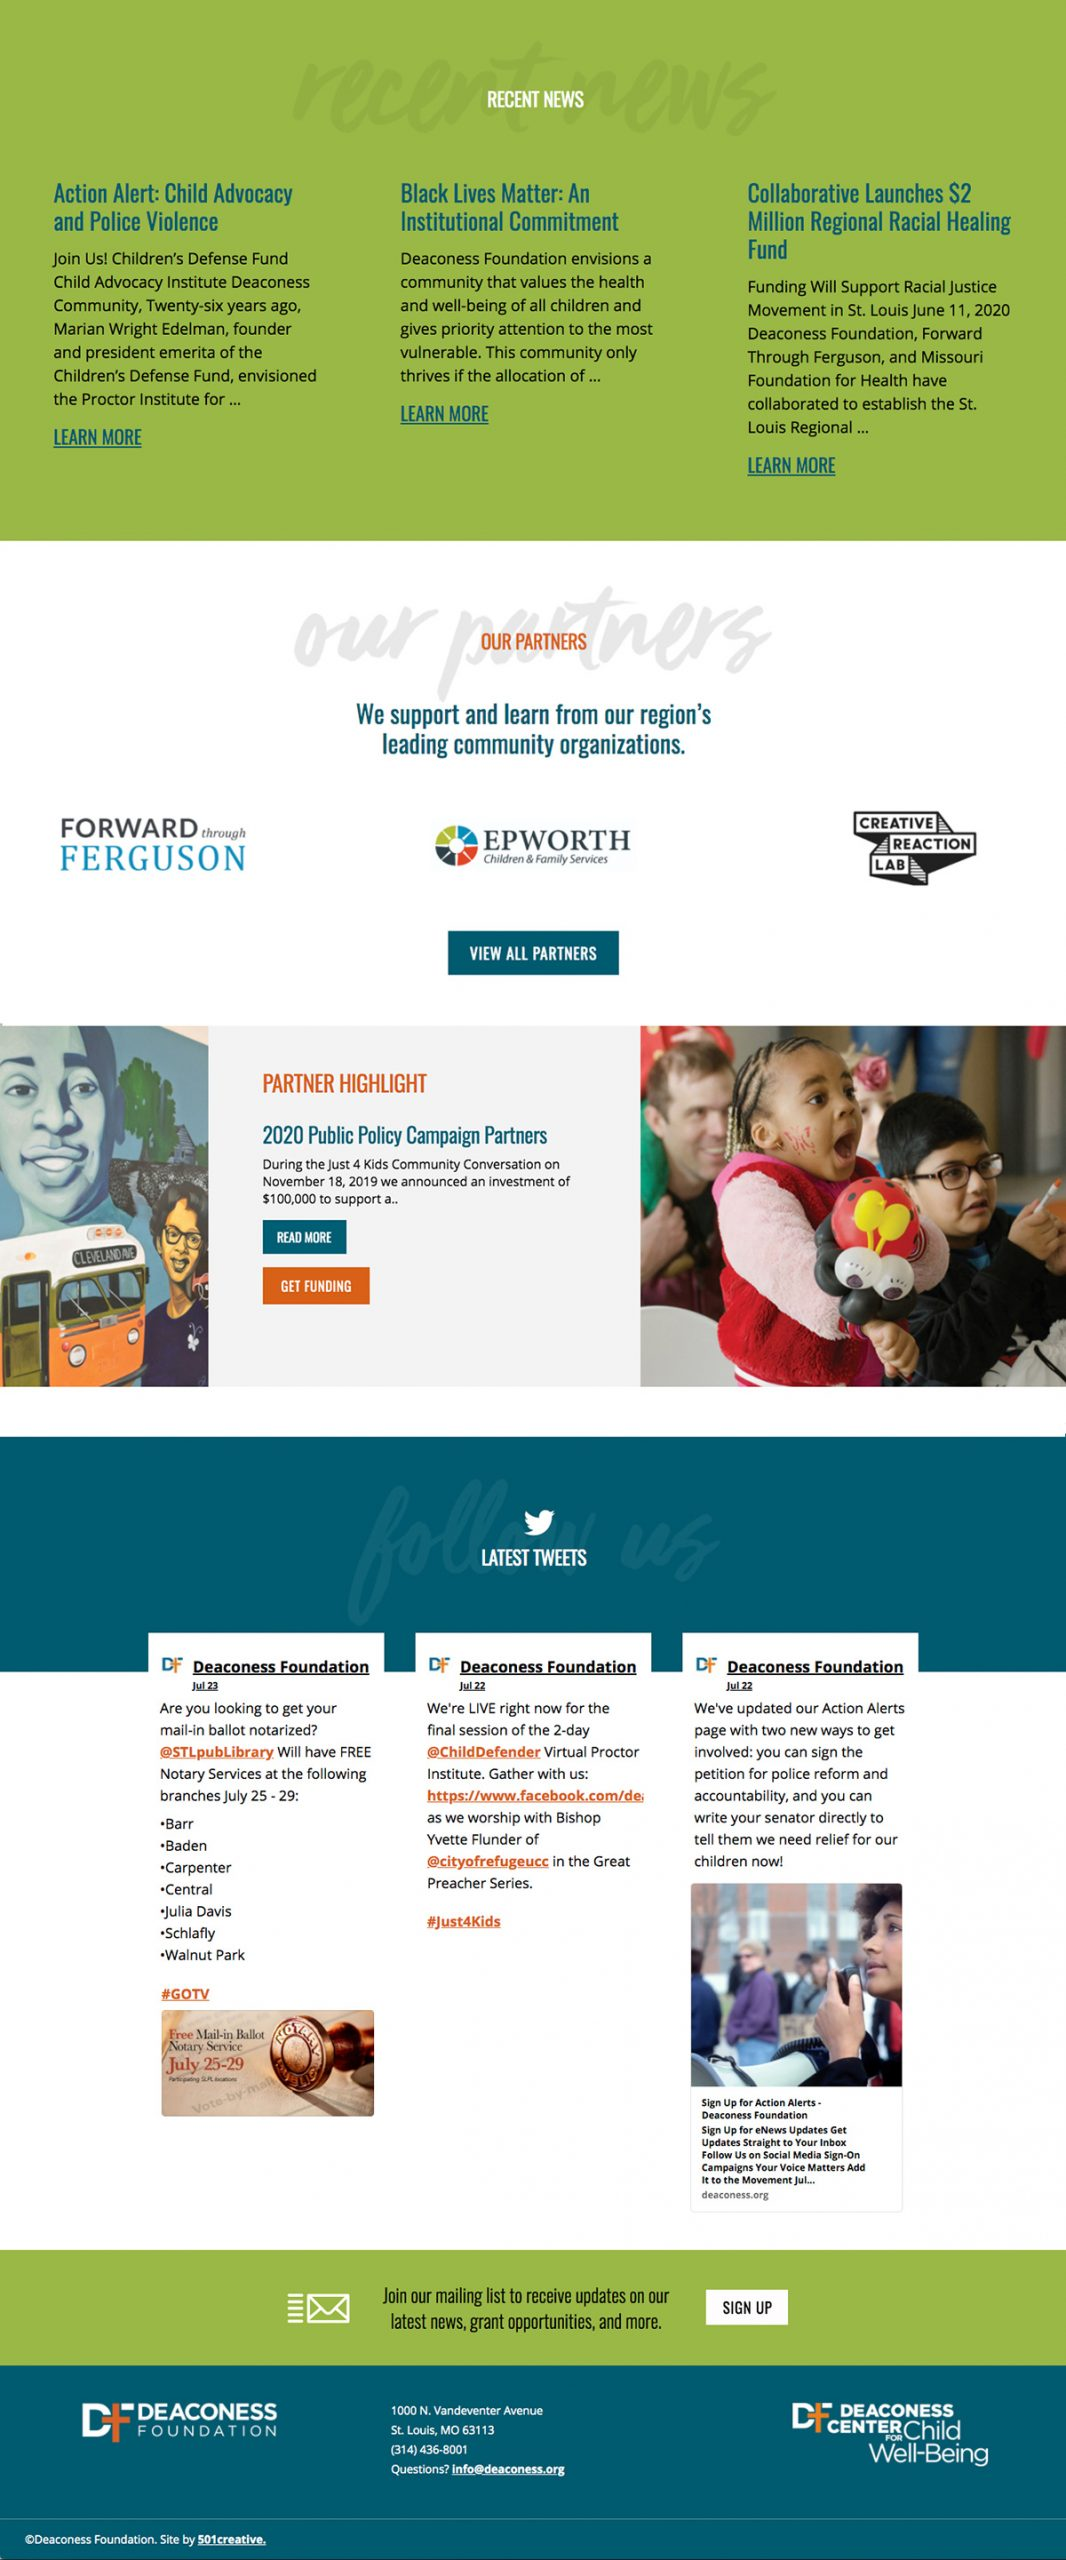 home page of the Deaconess Foundation website